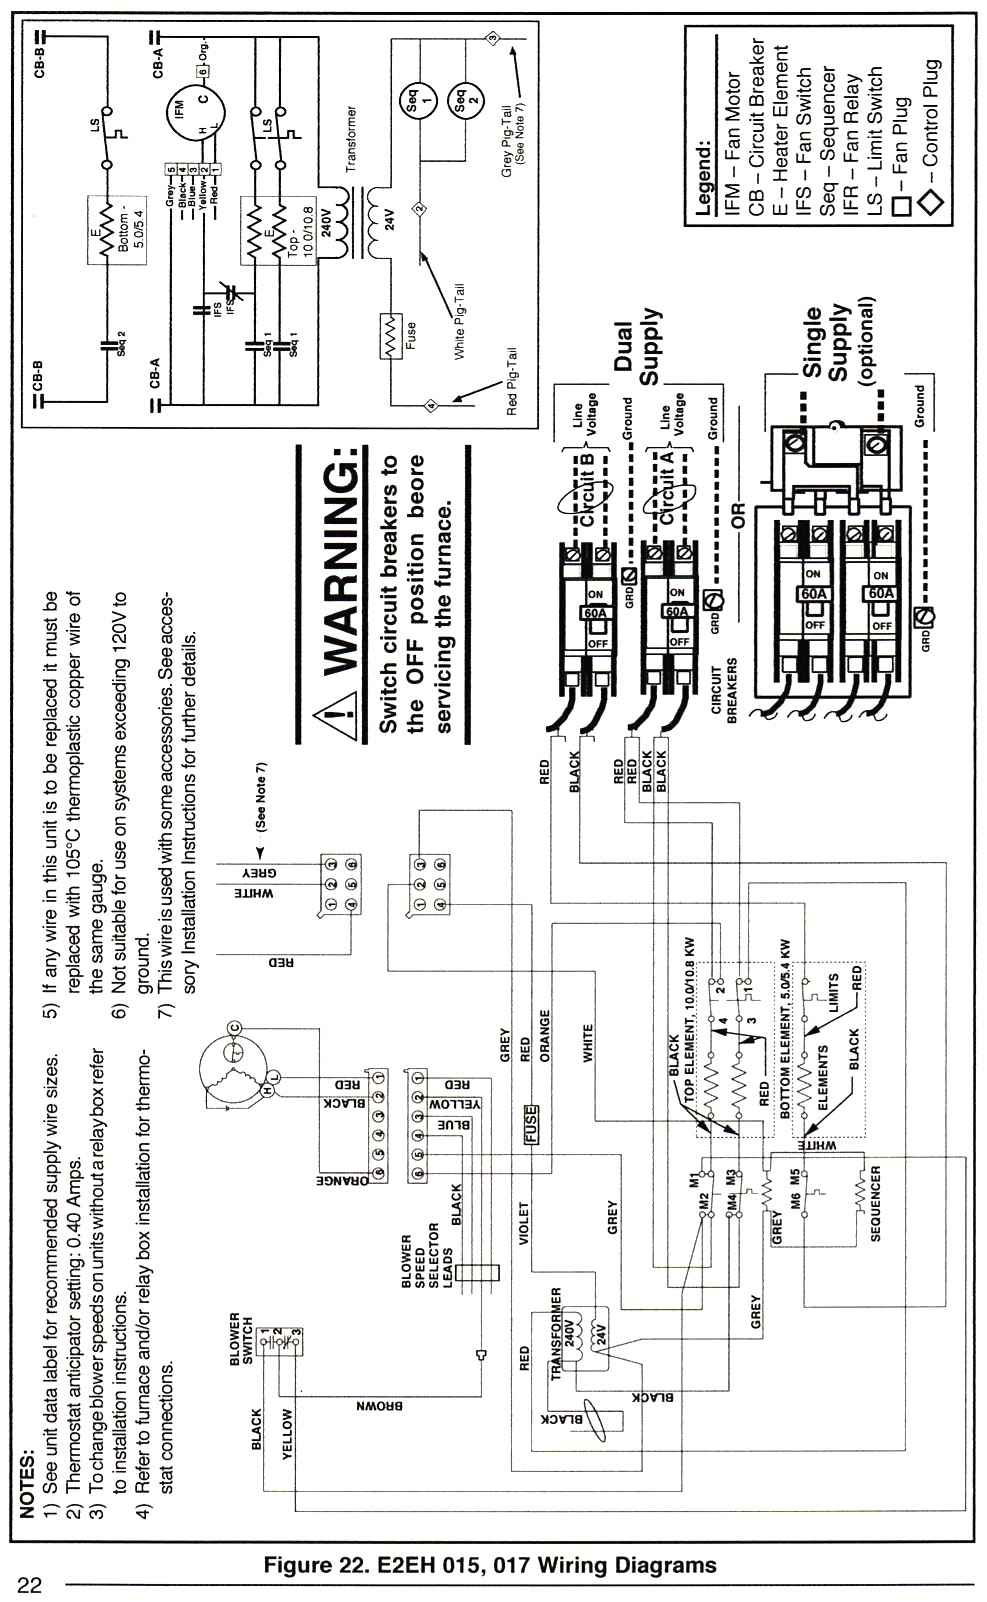 Intertherm Ac Wiring Diagram | Schematic Diagram on weil mclain diagram, delta diagram, lg diagram, typhoon diagram, goodman diagram, kohler diagram, polaris diagram, pioneer diagram, rca diagram, whirlpool diagram, atlas diagram,